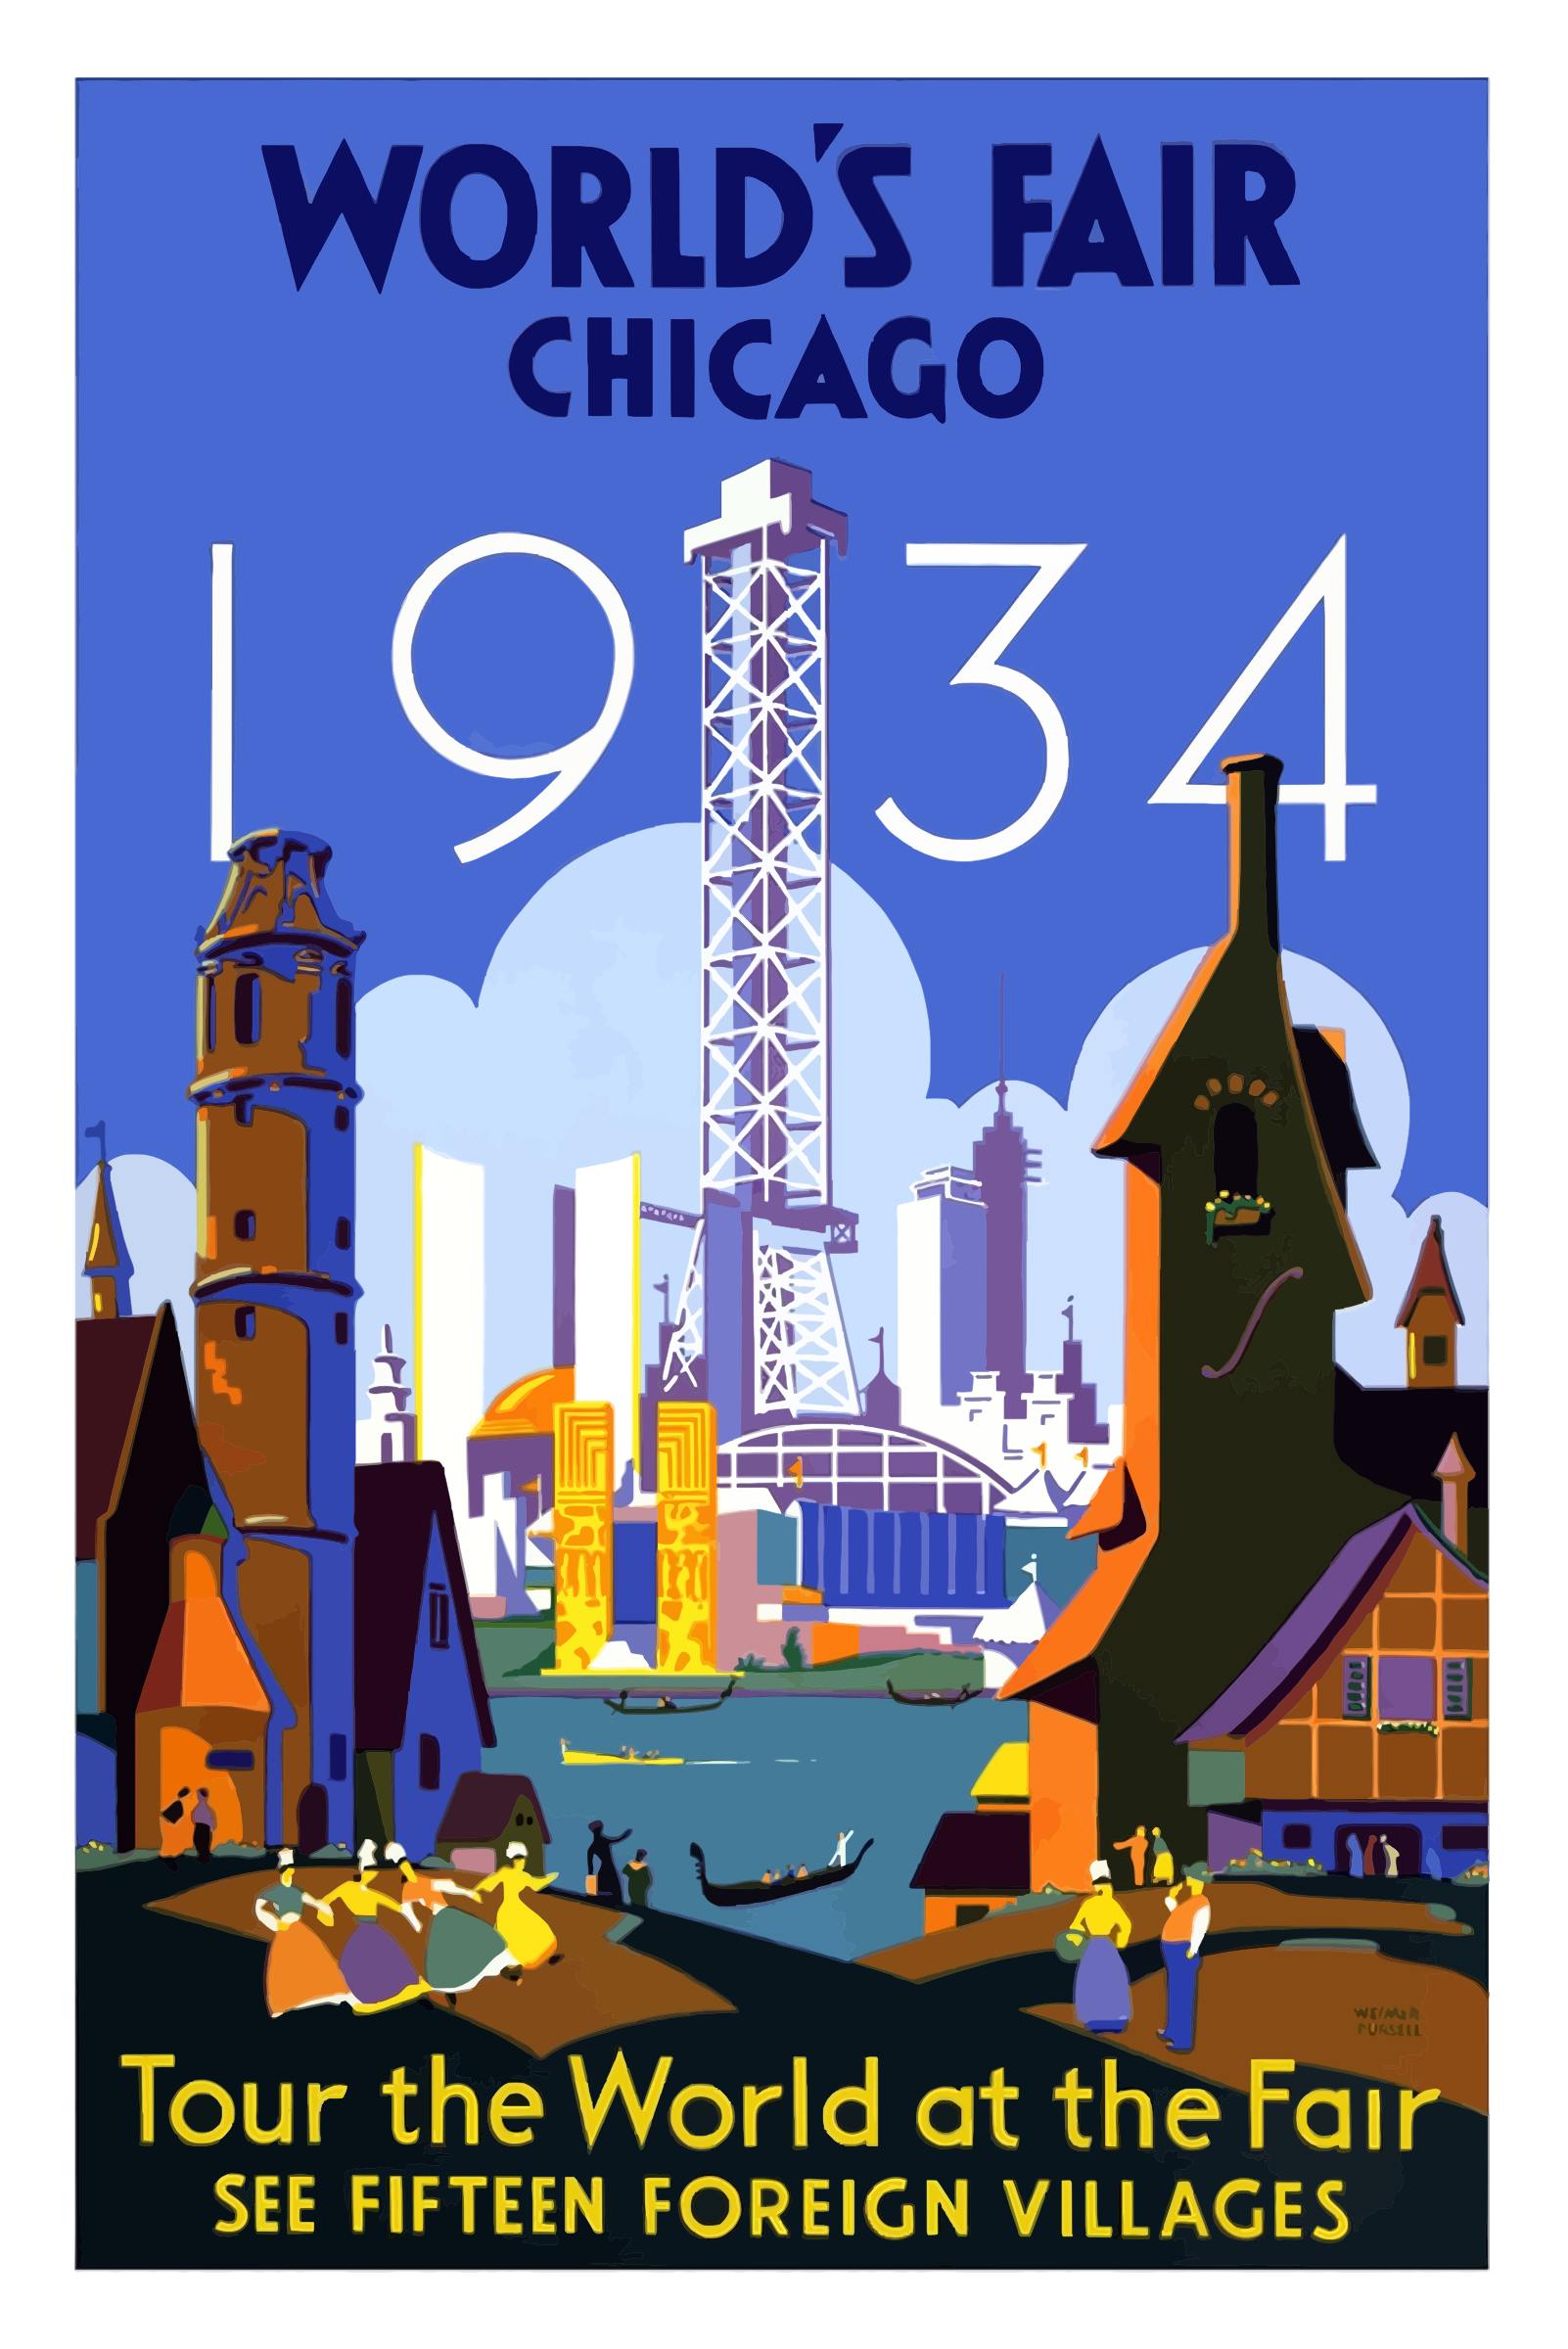 Vintage Travel Poster Chicago Worlds Fair 1934 by GDJ